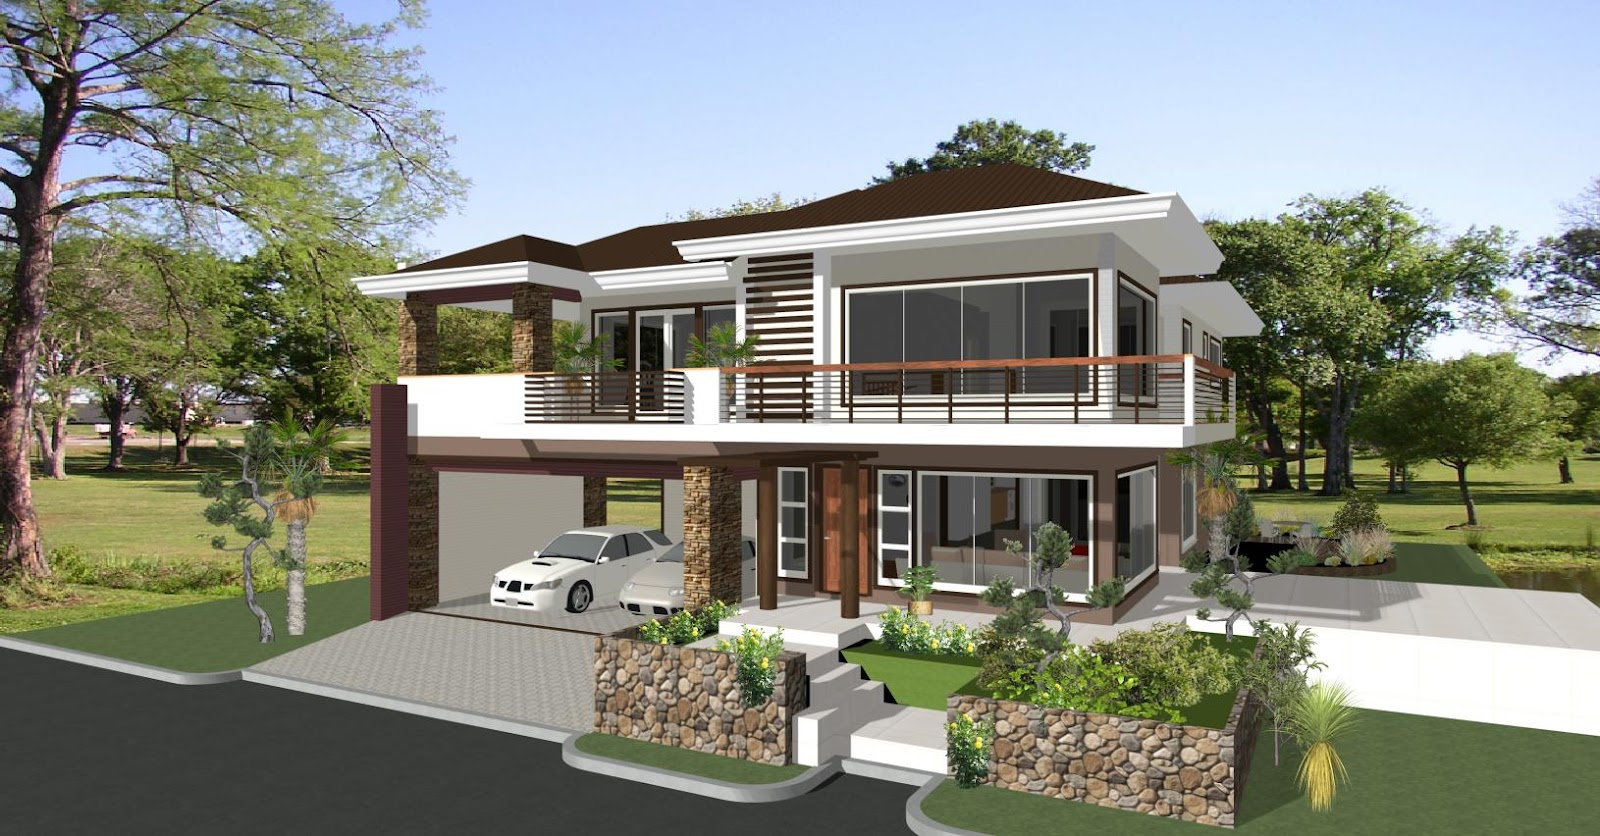 Dream Home Designs | Erecre Group Realty, Design and Construction